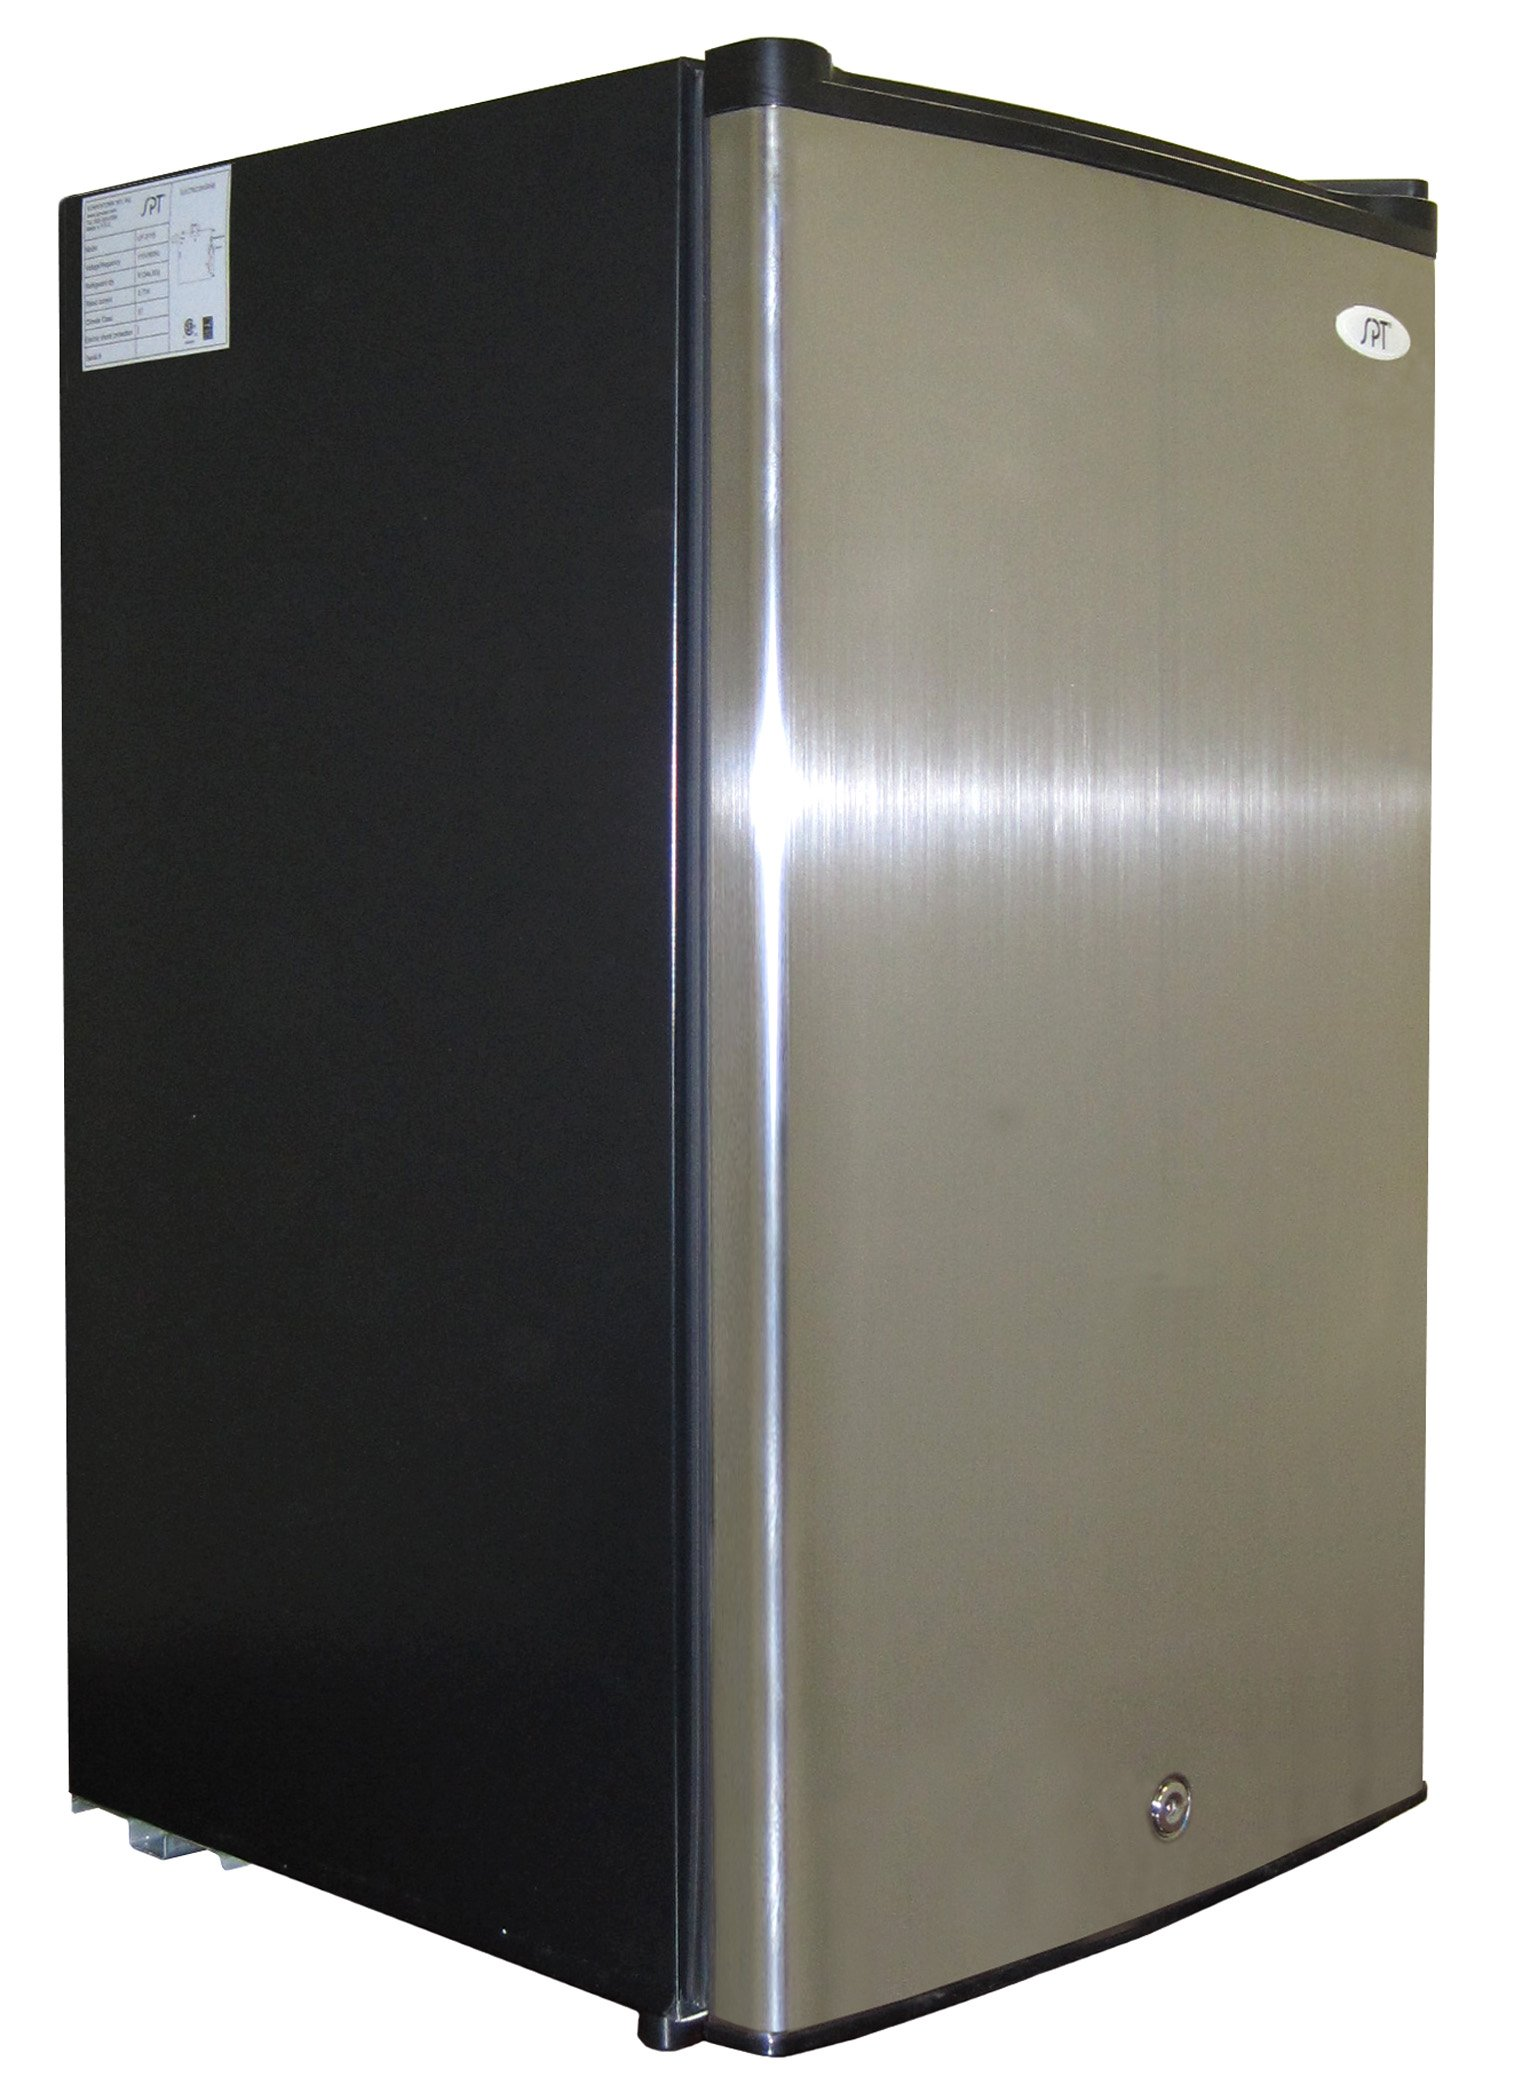 SPT UF-304SS Energy Star Upright Freezer, 3.0 Cubic Feet, Stainless Steel by SPT